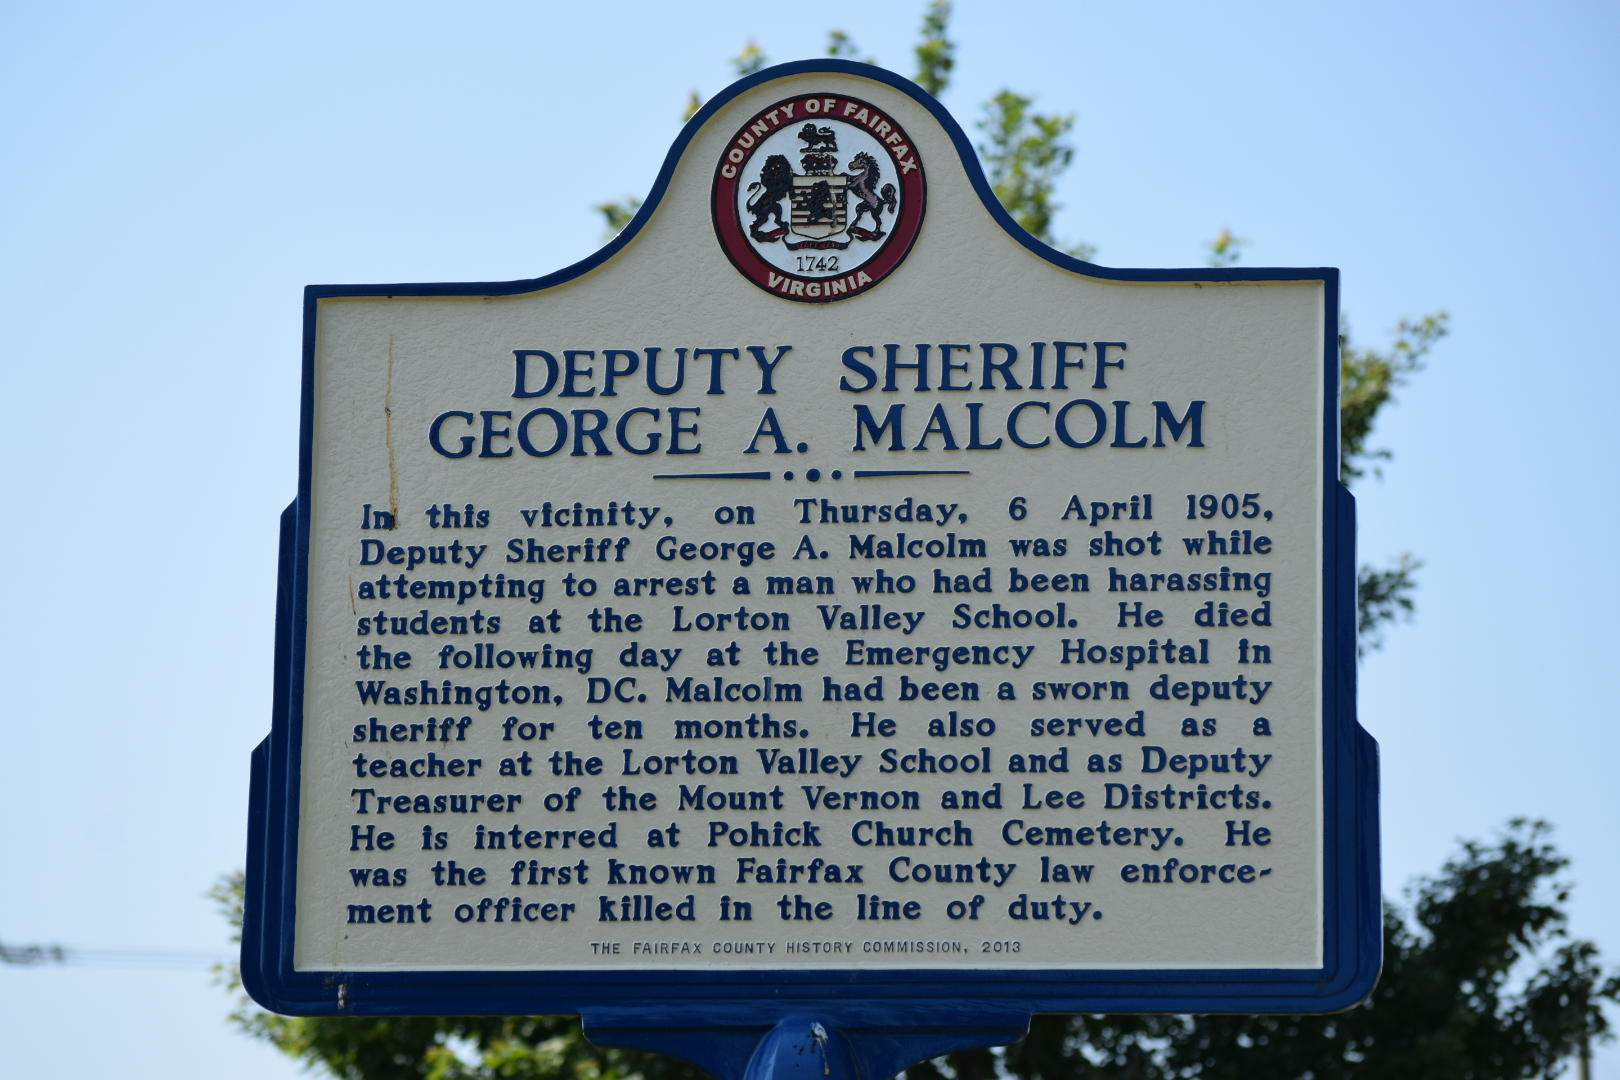 Deputy Sheriff George A. Malcolm | Fairfax County Sheriff's Office, Virginia